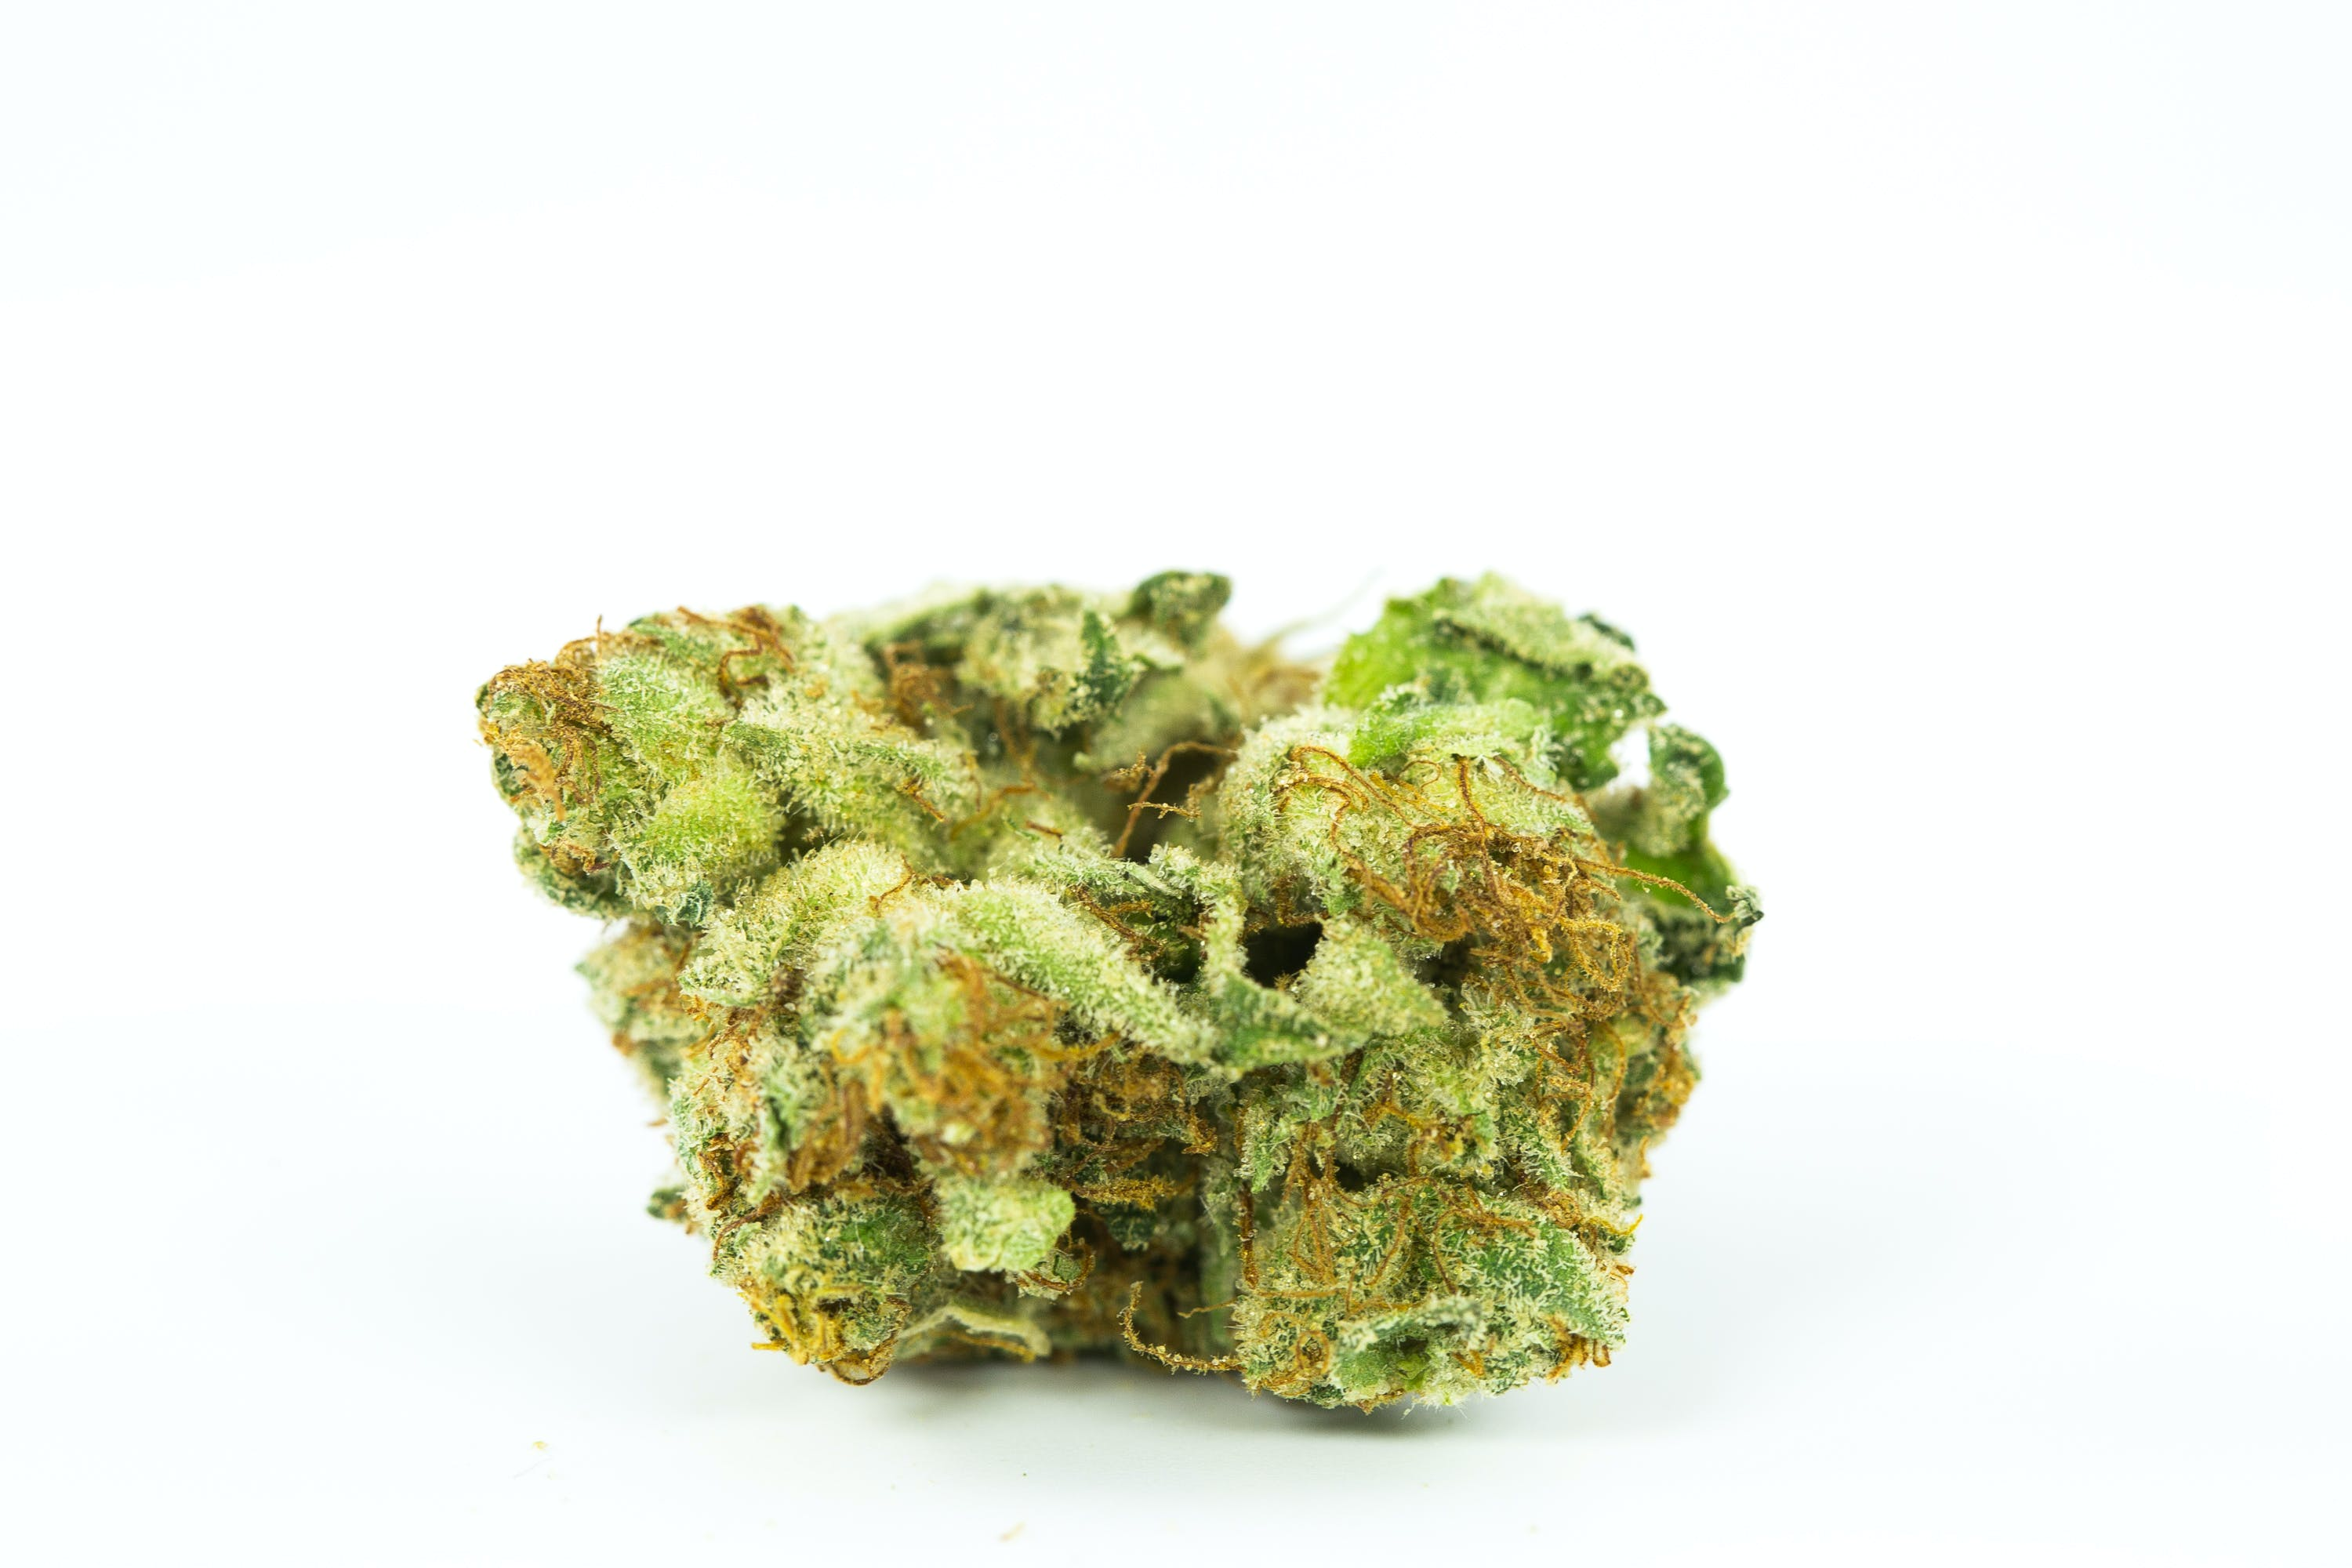 PsychOG The Strongest Strains on the Planet